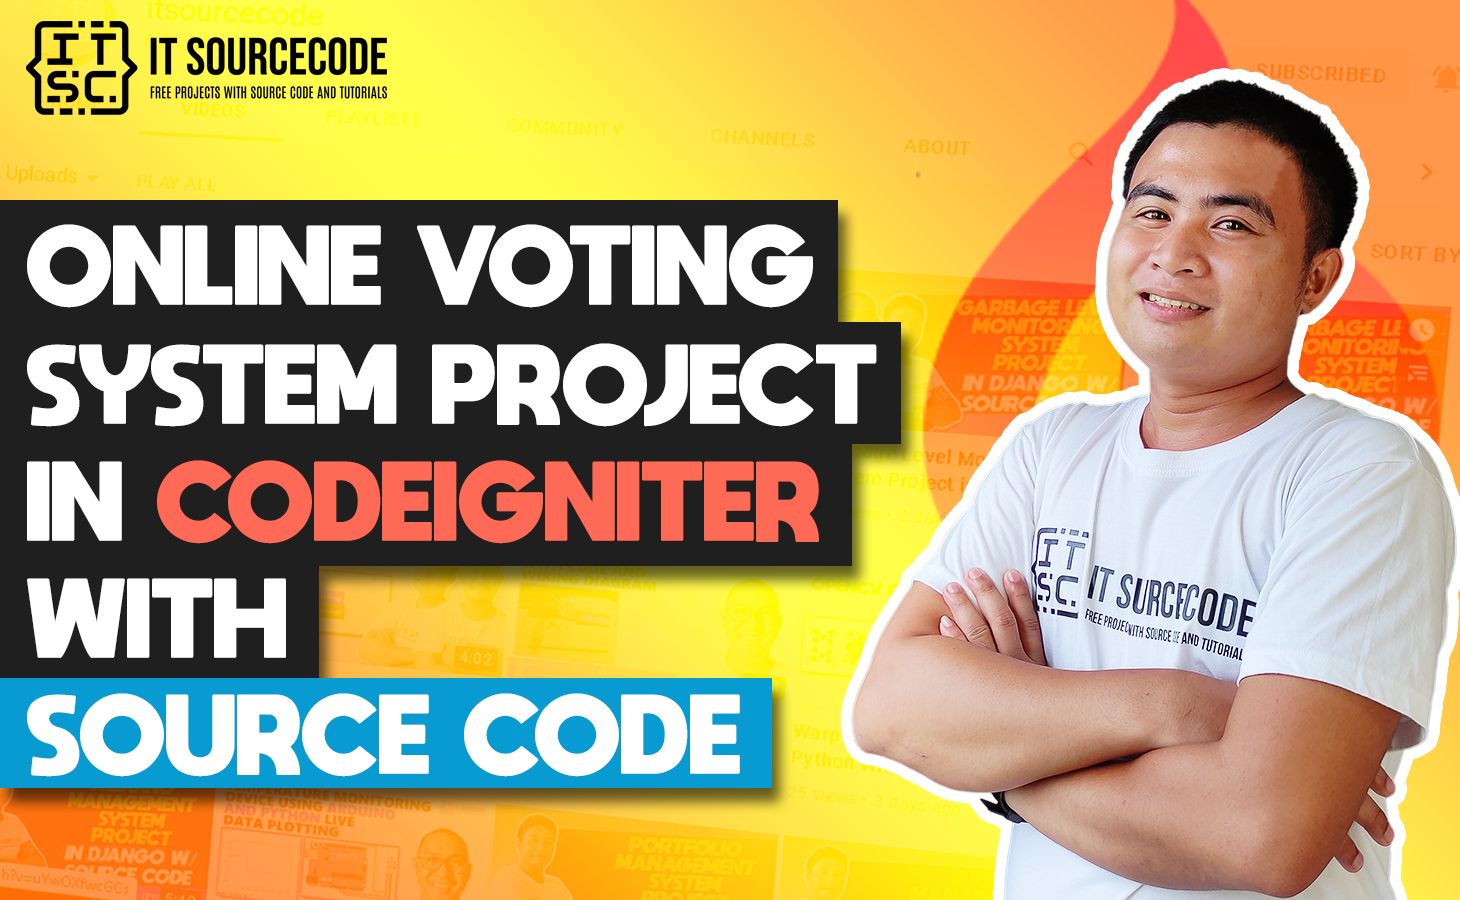 Online Voting System Project In CodeIgniter With Source Code